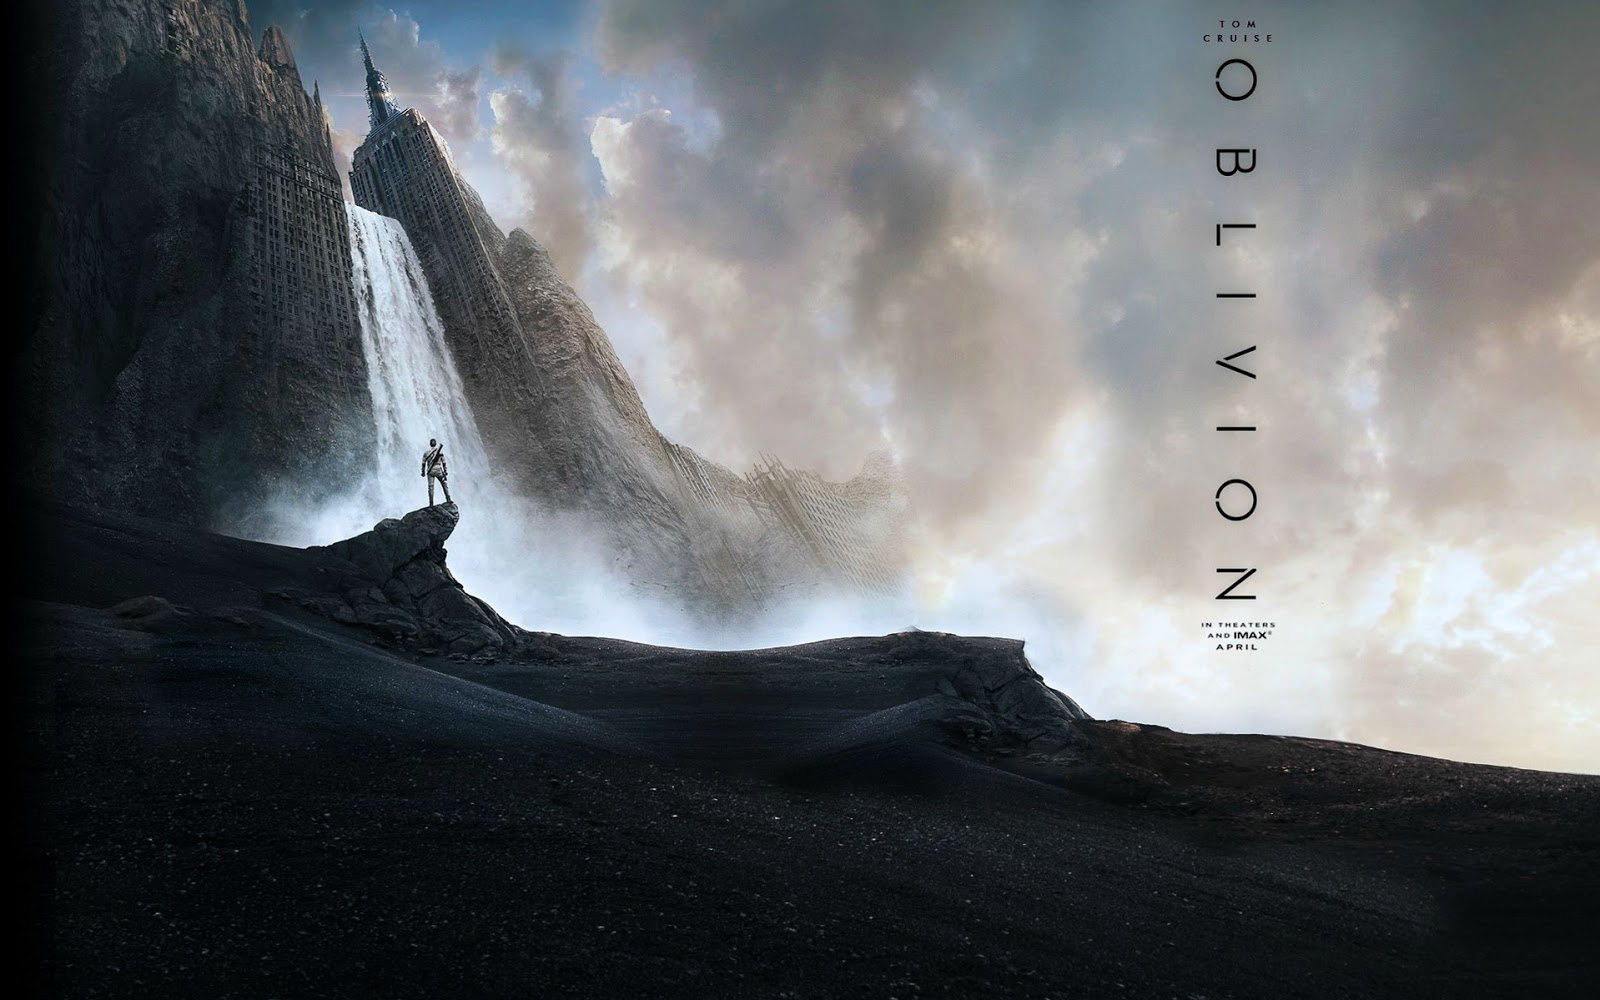 Oblivion 2013 Movie 4k Hd Desktop Wallpaper For 4k Ultra: Oblivion 2013 Movie HD Wallpapers And Posters HQ